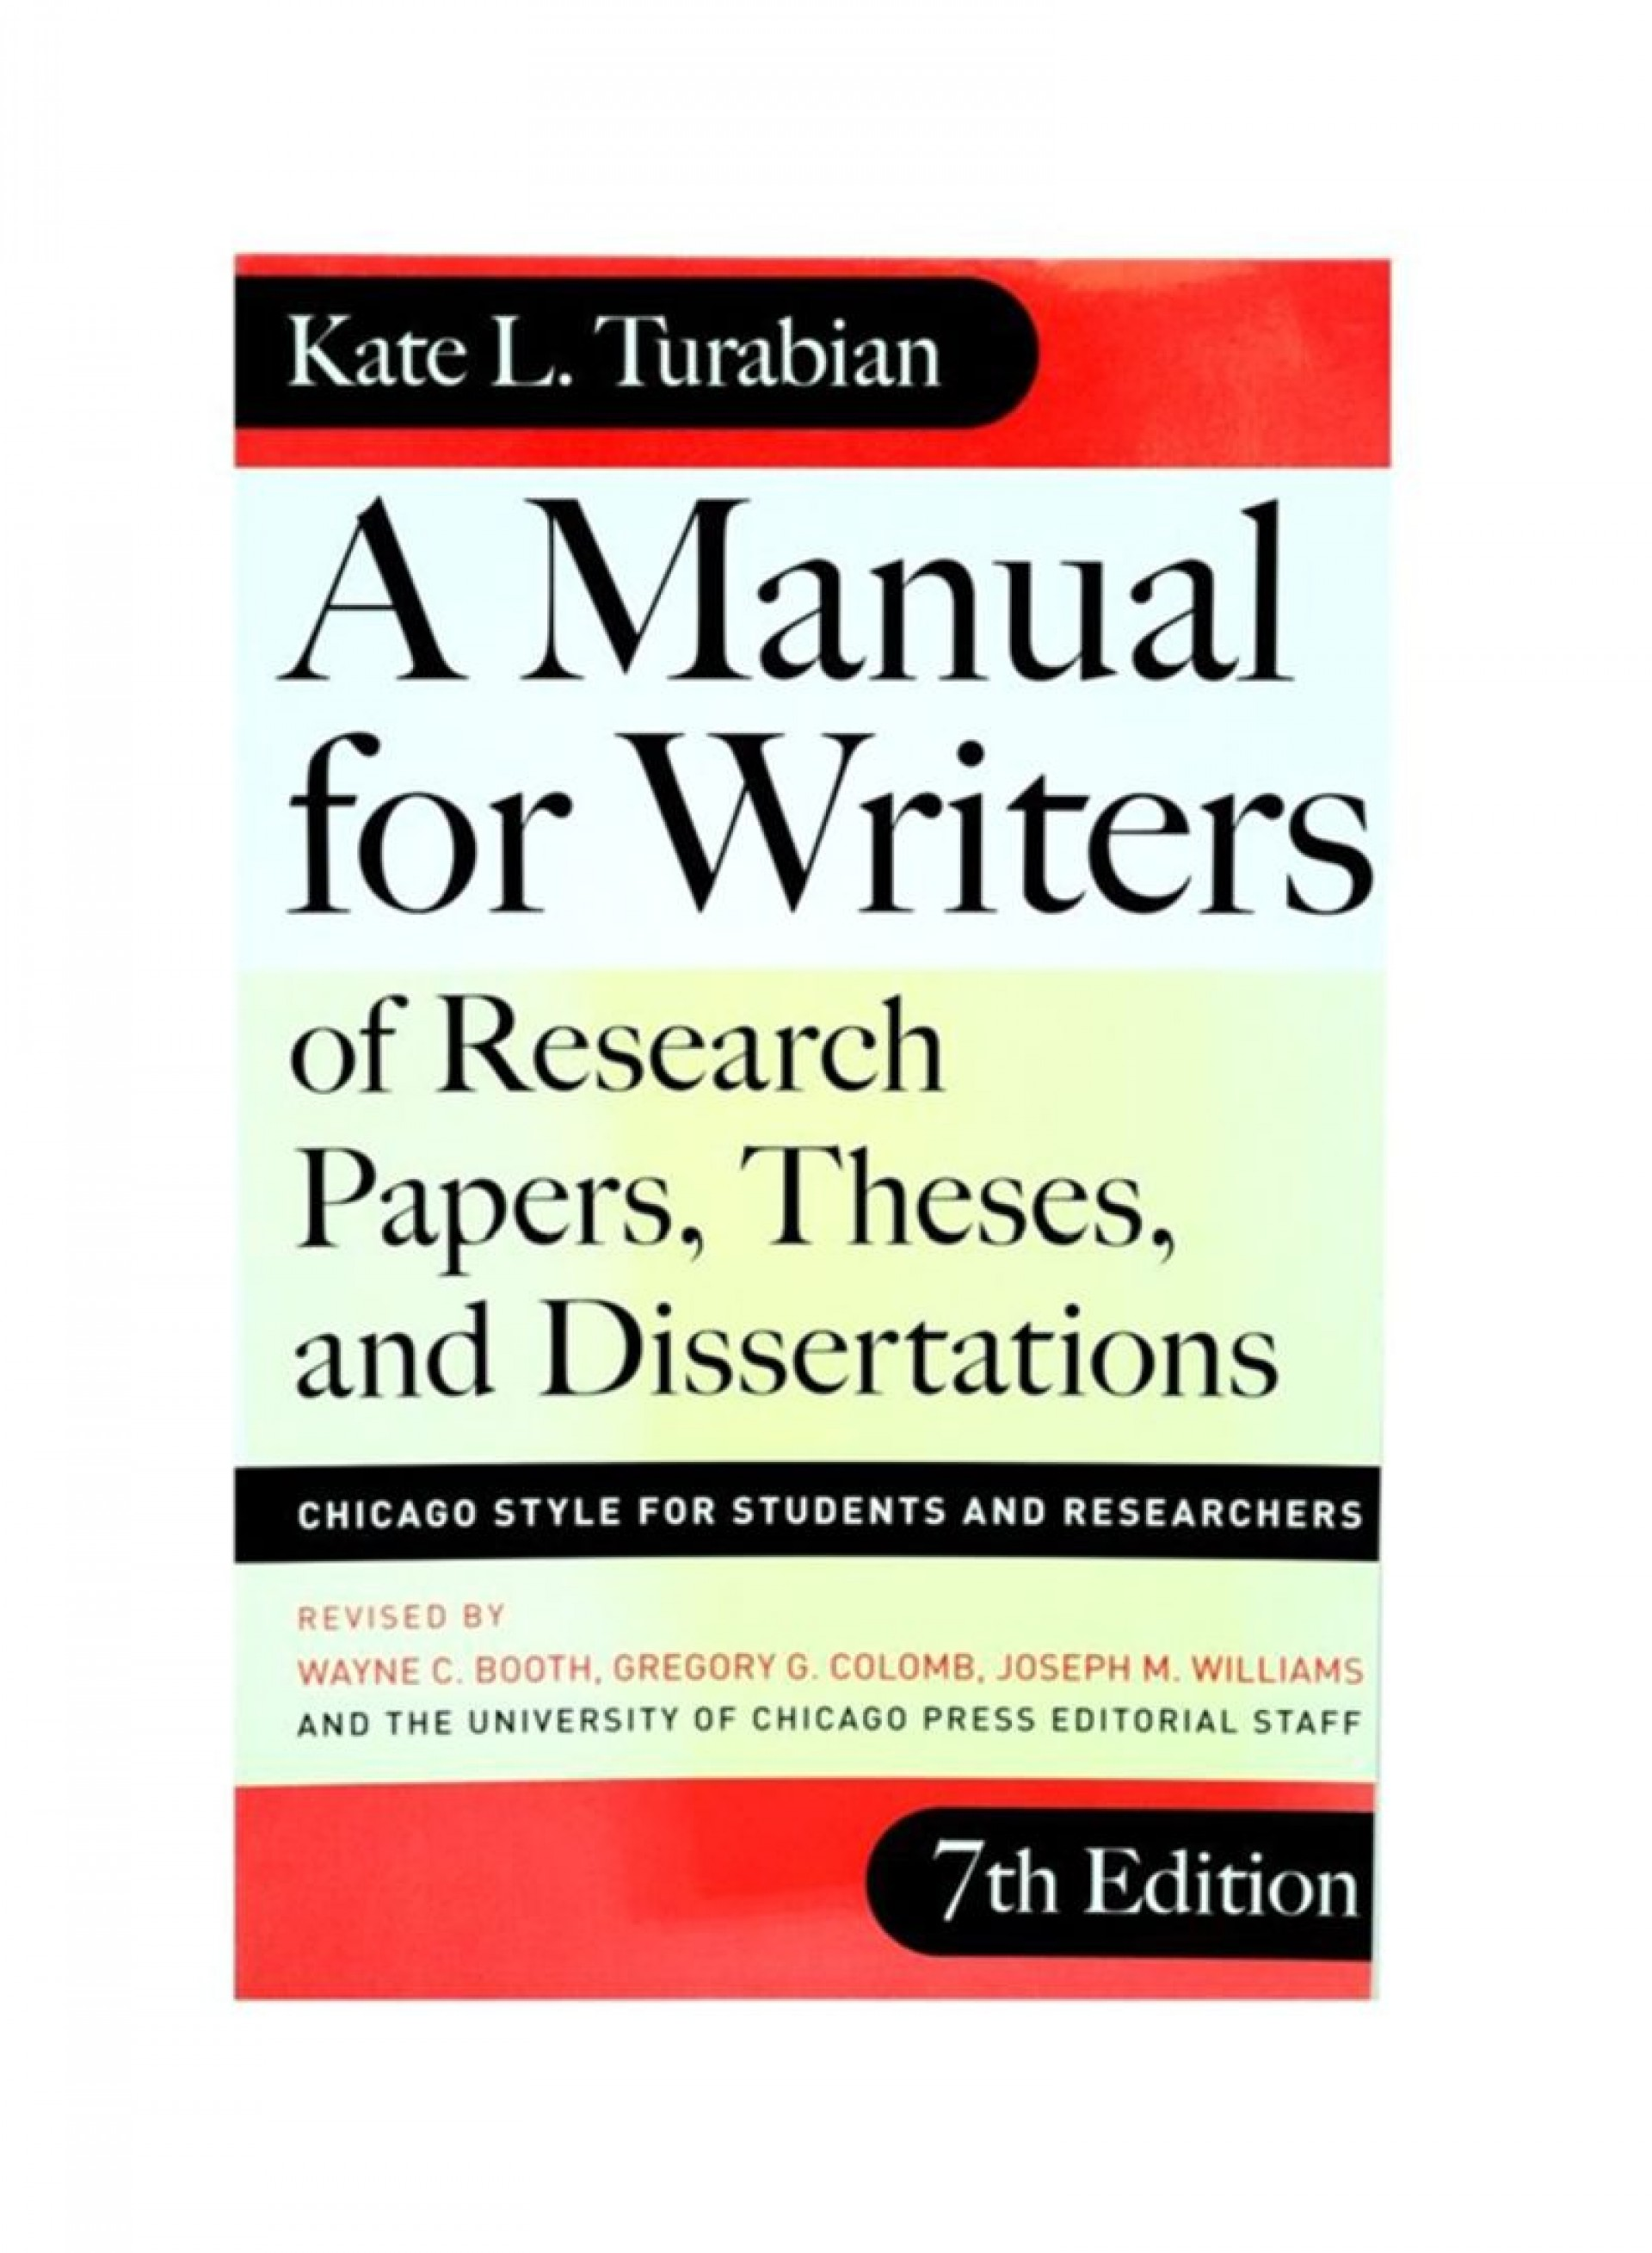 021 Research Paper N21270079a 1 Manual For Writers Of Papers Theses And Magnificent Dissertations 8th 13 A 9th Edition Apa 1920